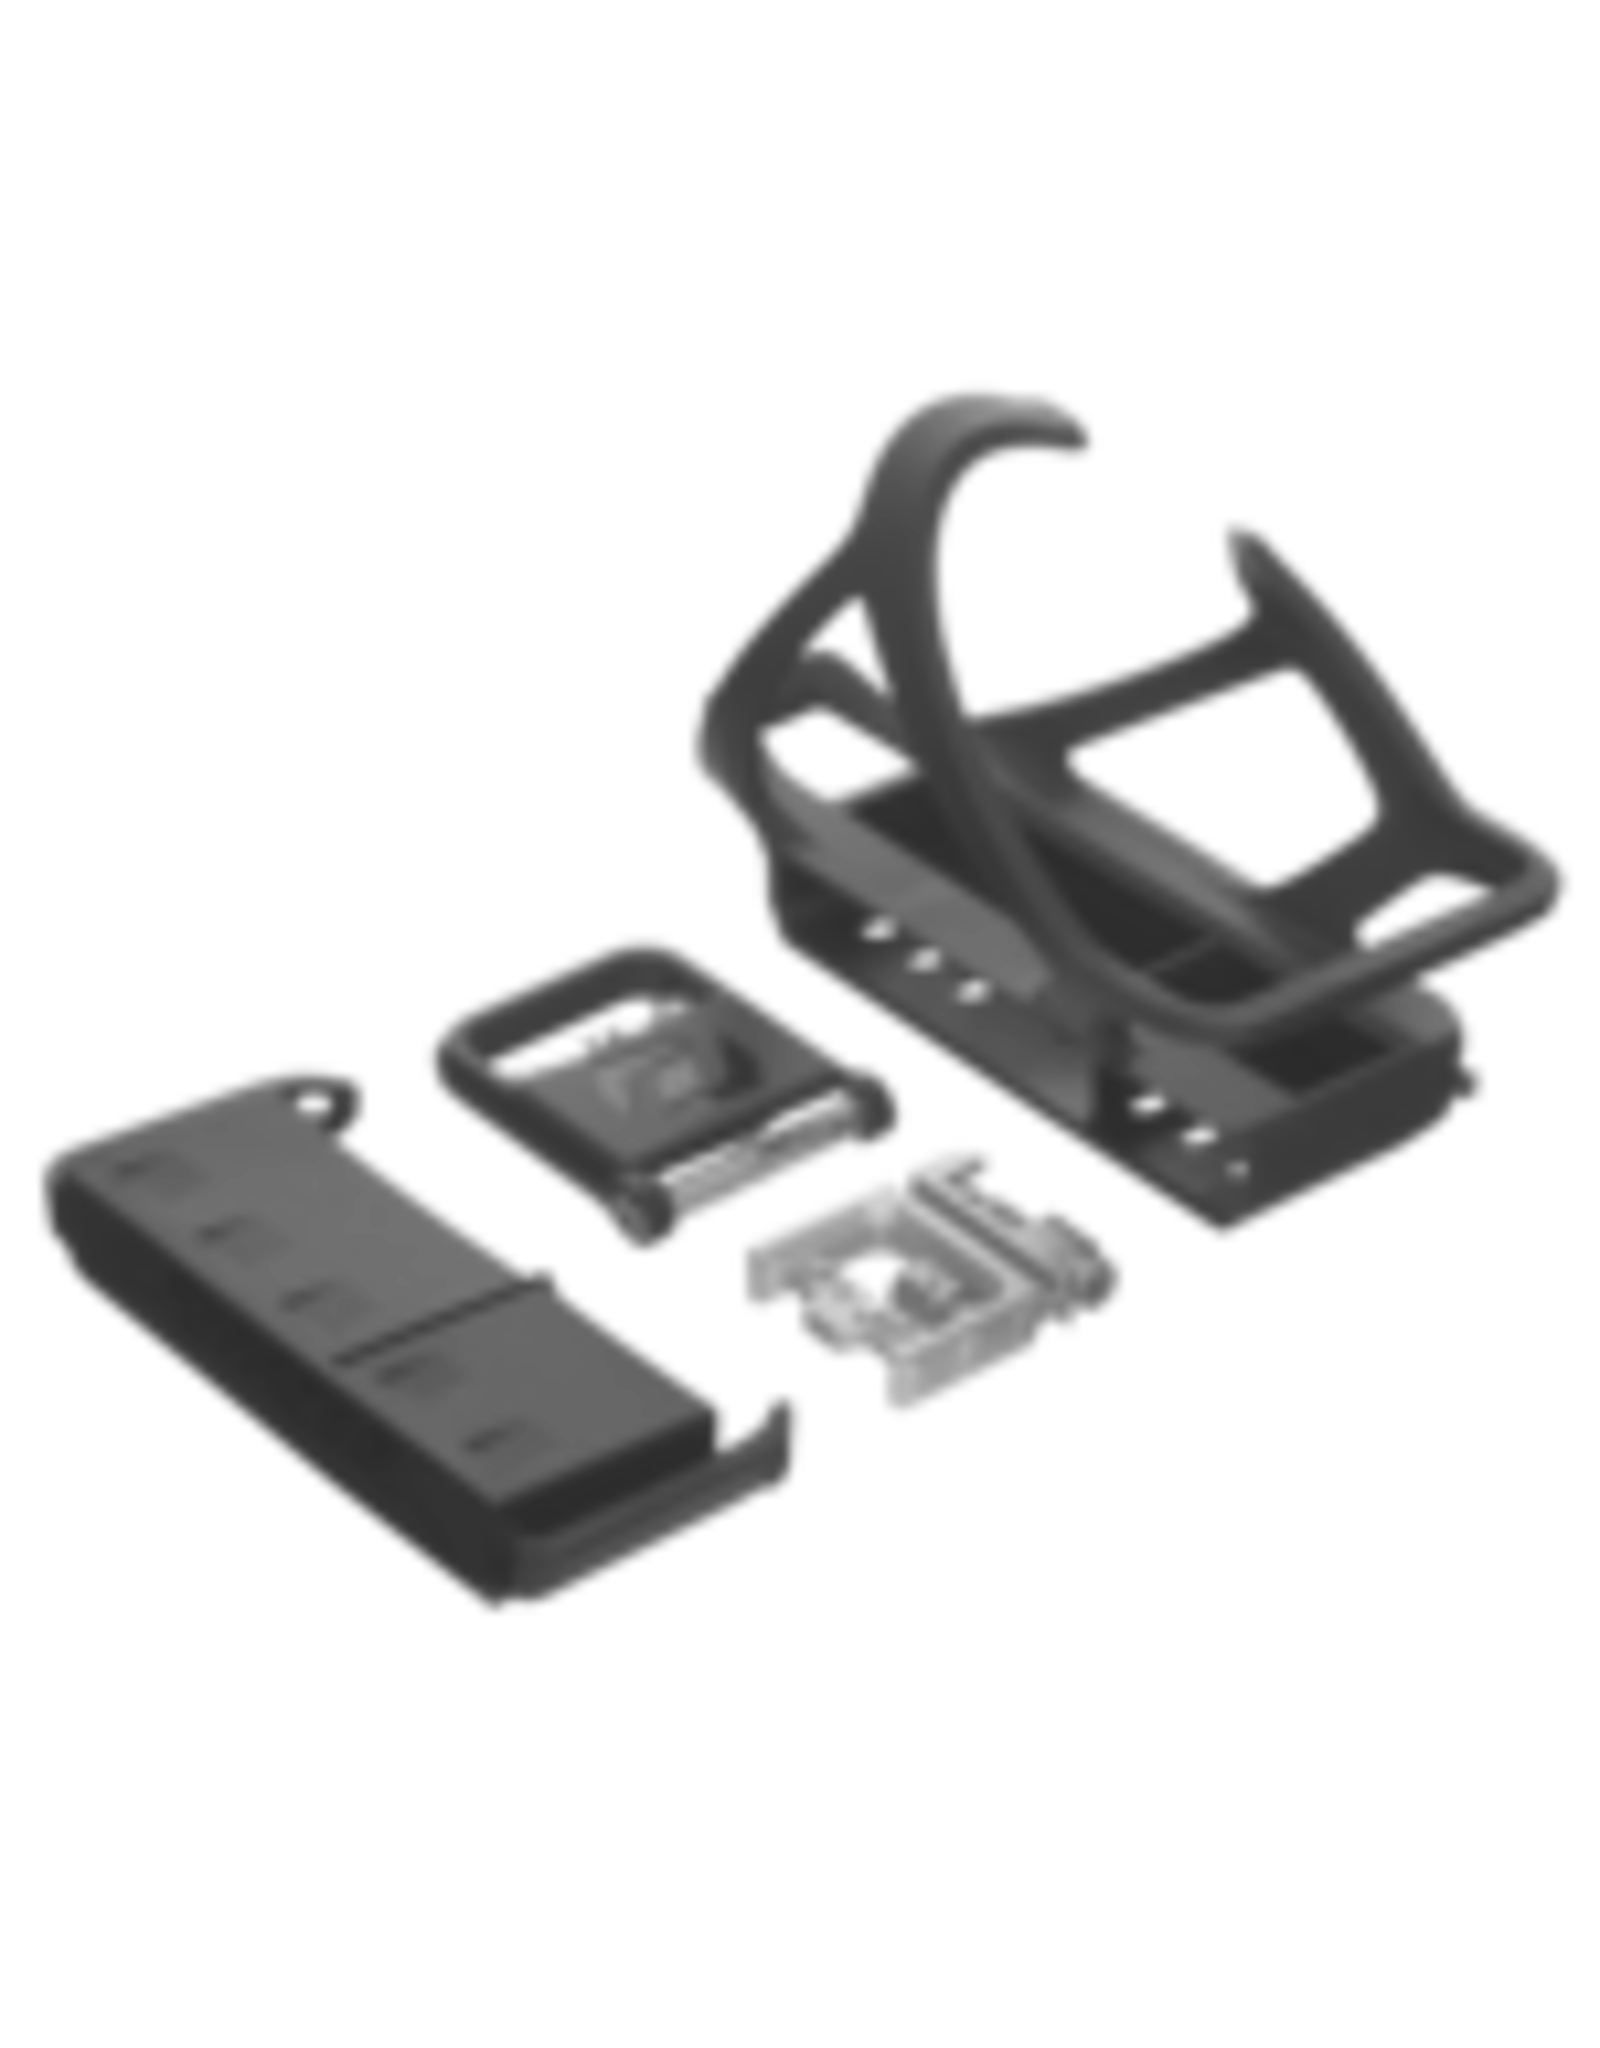 SYNCROS SYNCROS BOTTLE CAGE TAILOR CAGE 3.0 BOTTLE CAGE BLACK - LEFT